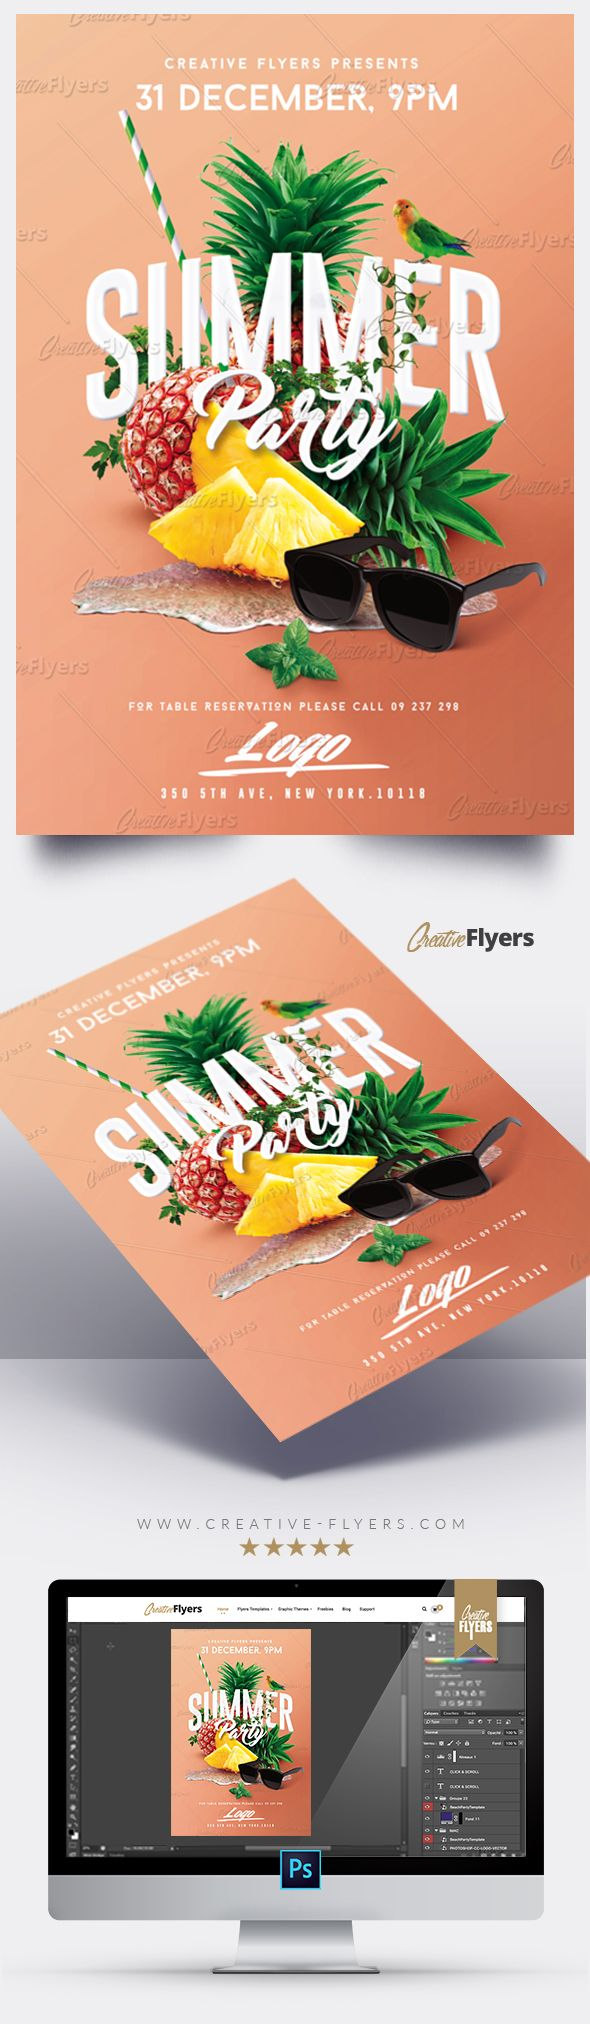 Poster and flyer templates